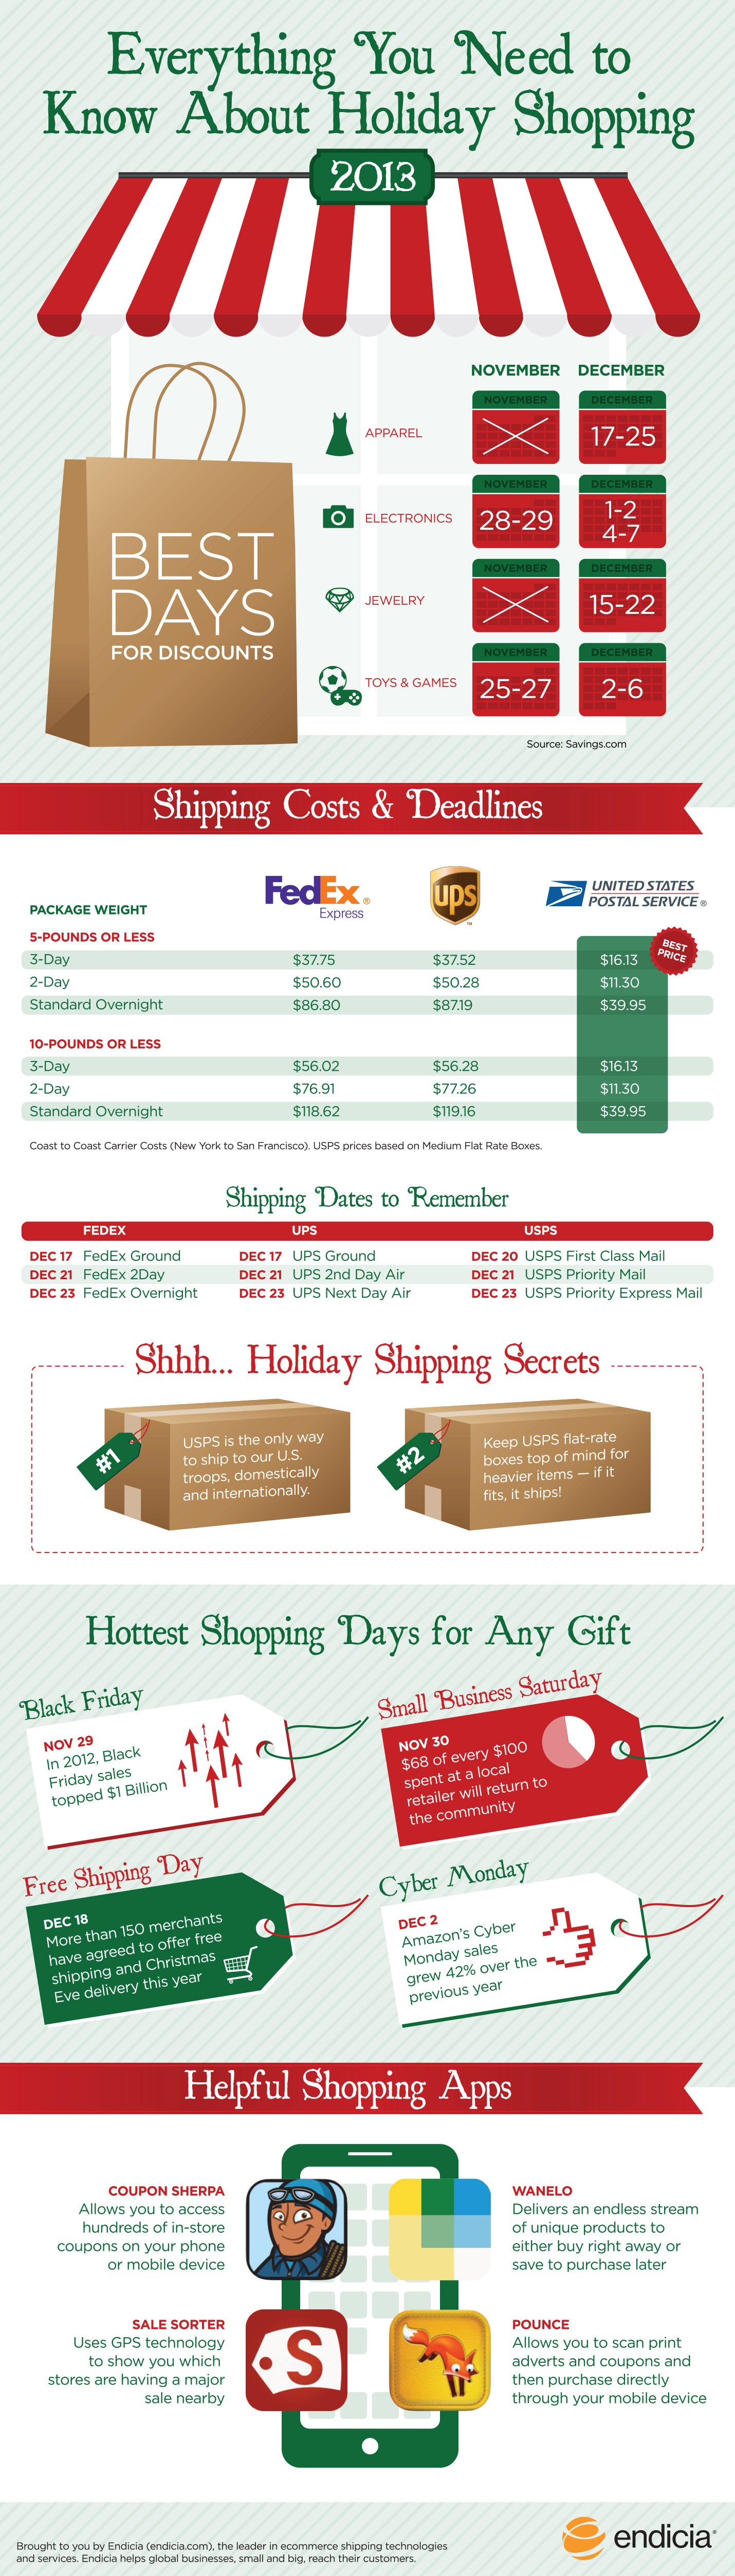 The Only Holiday Dates You Need To Know (Infographic)